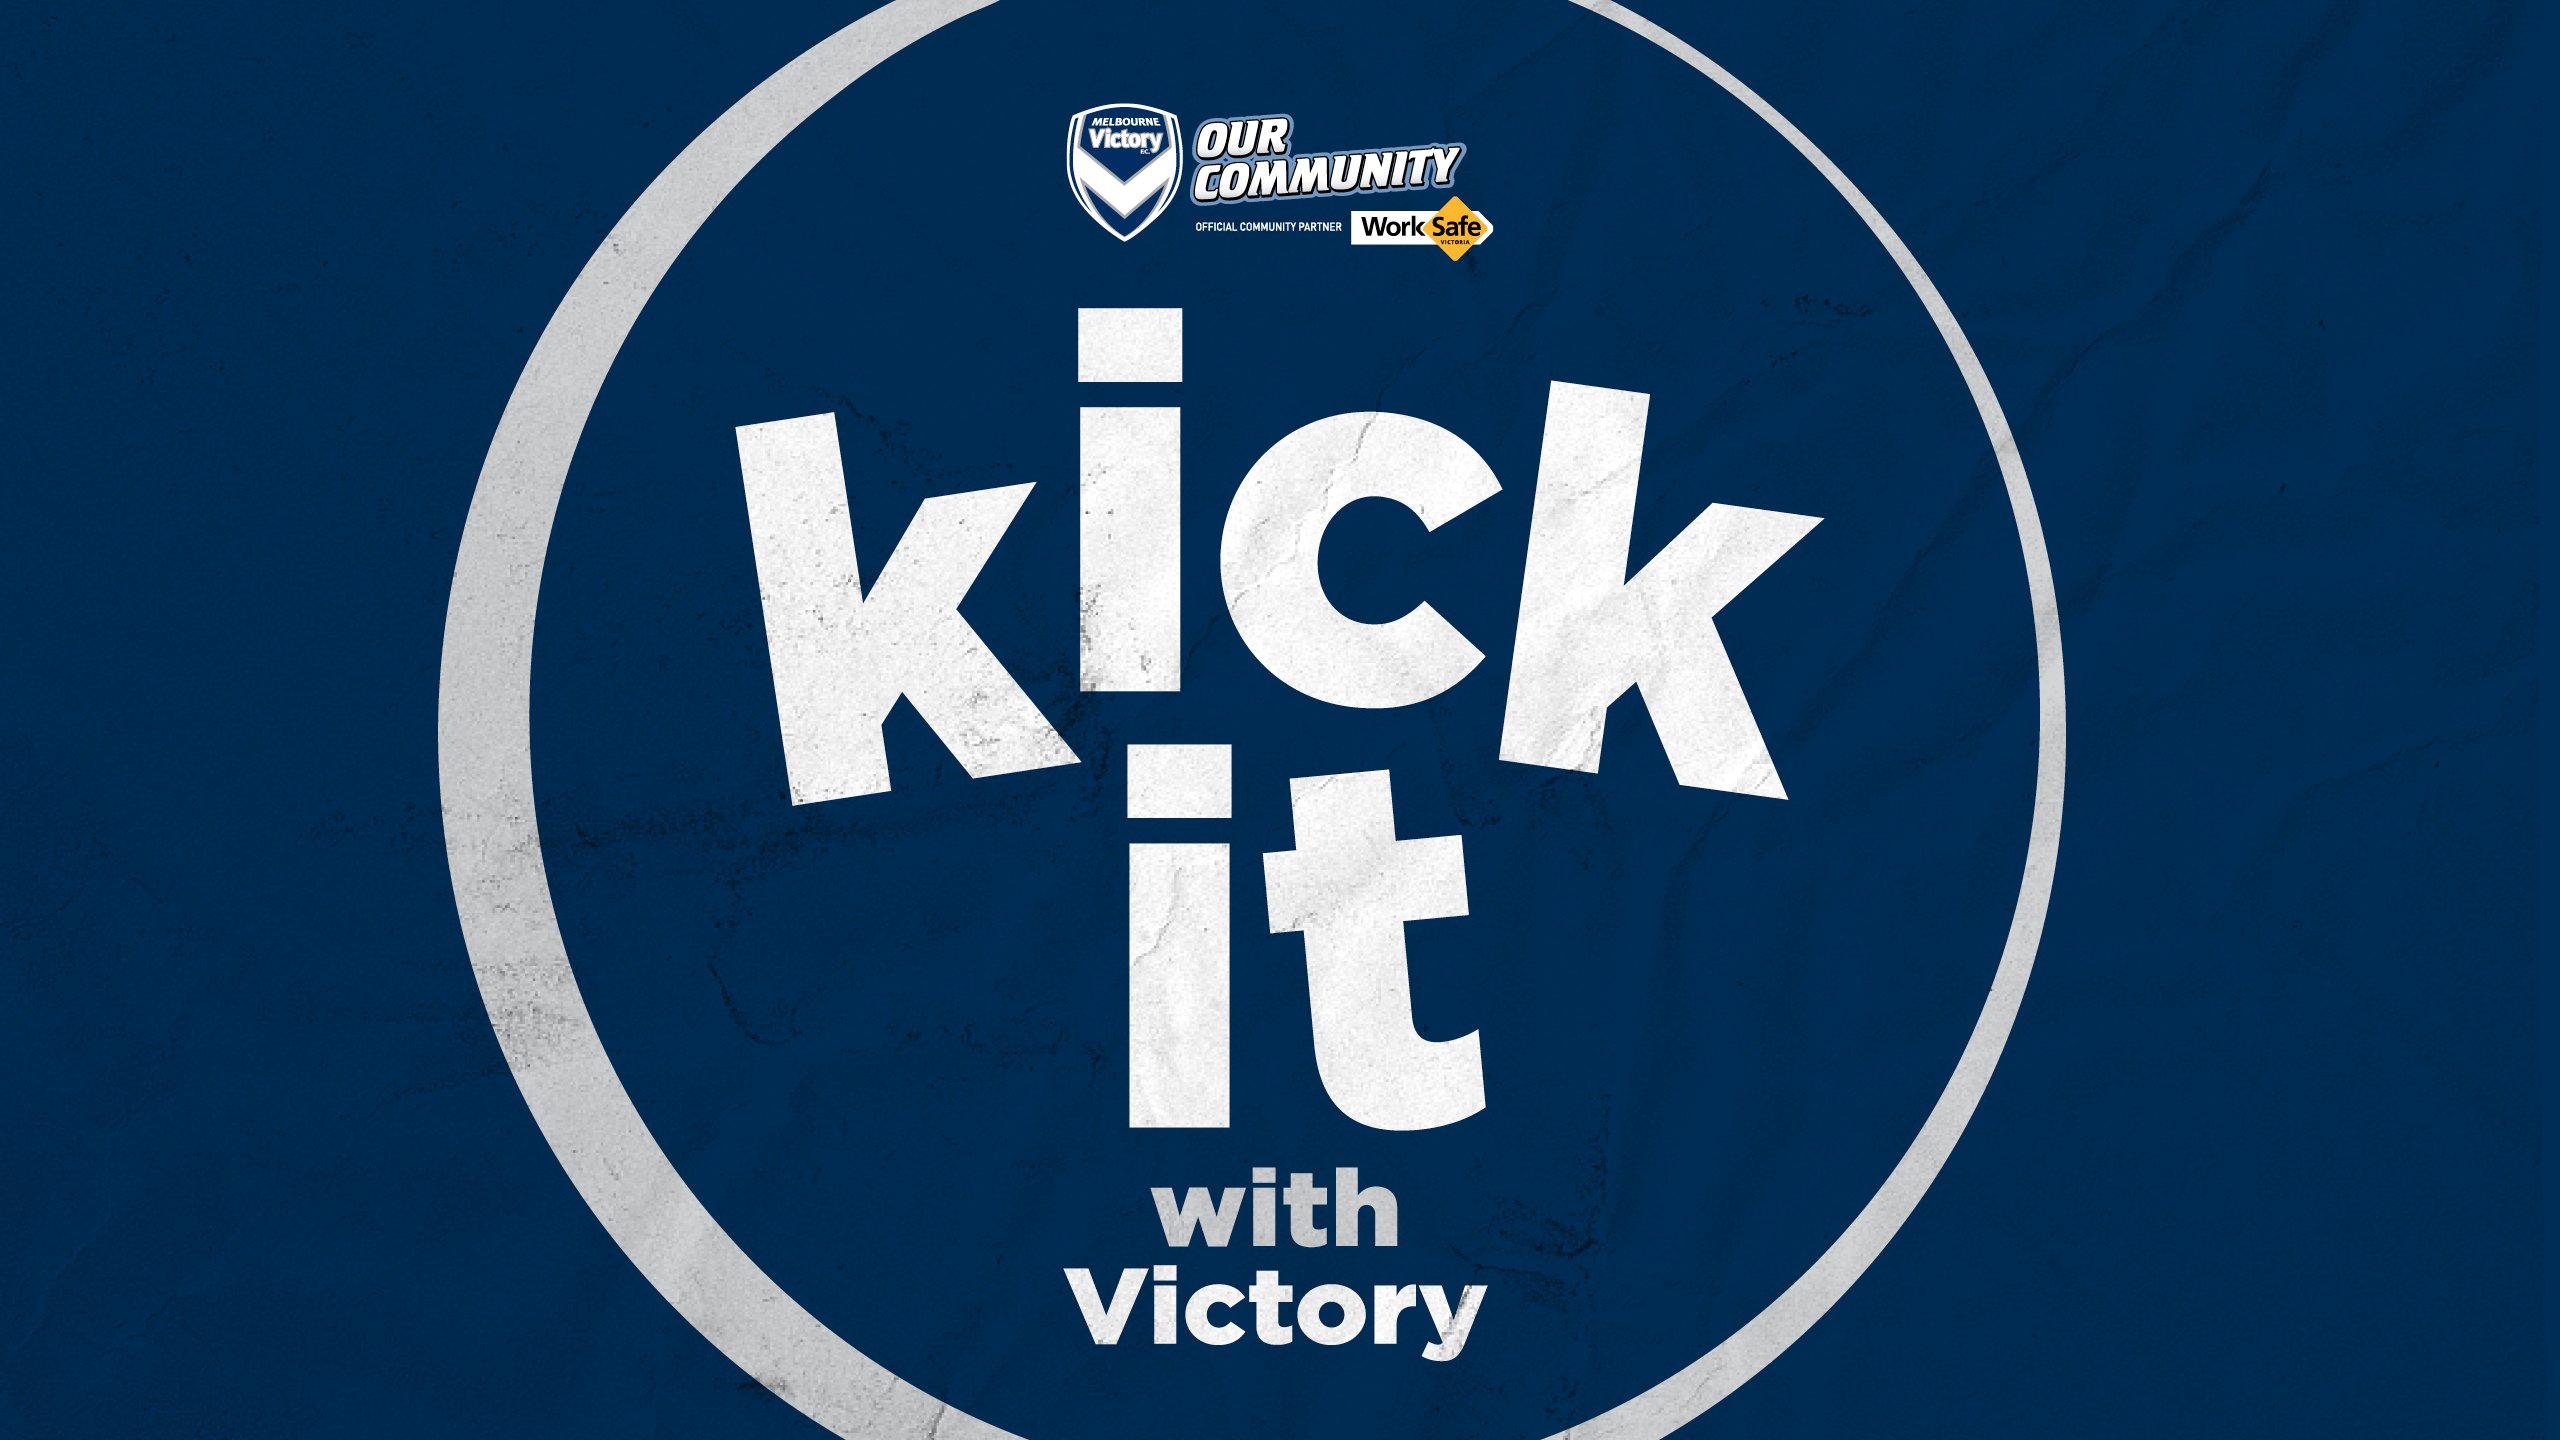 Kick it with Victory2_1920x1080.jpg